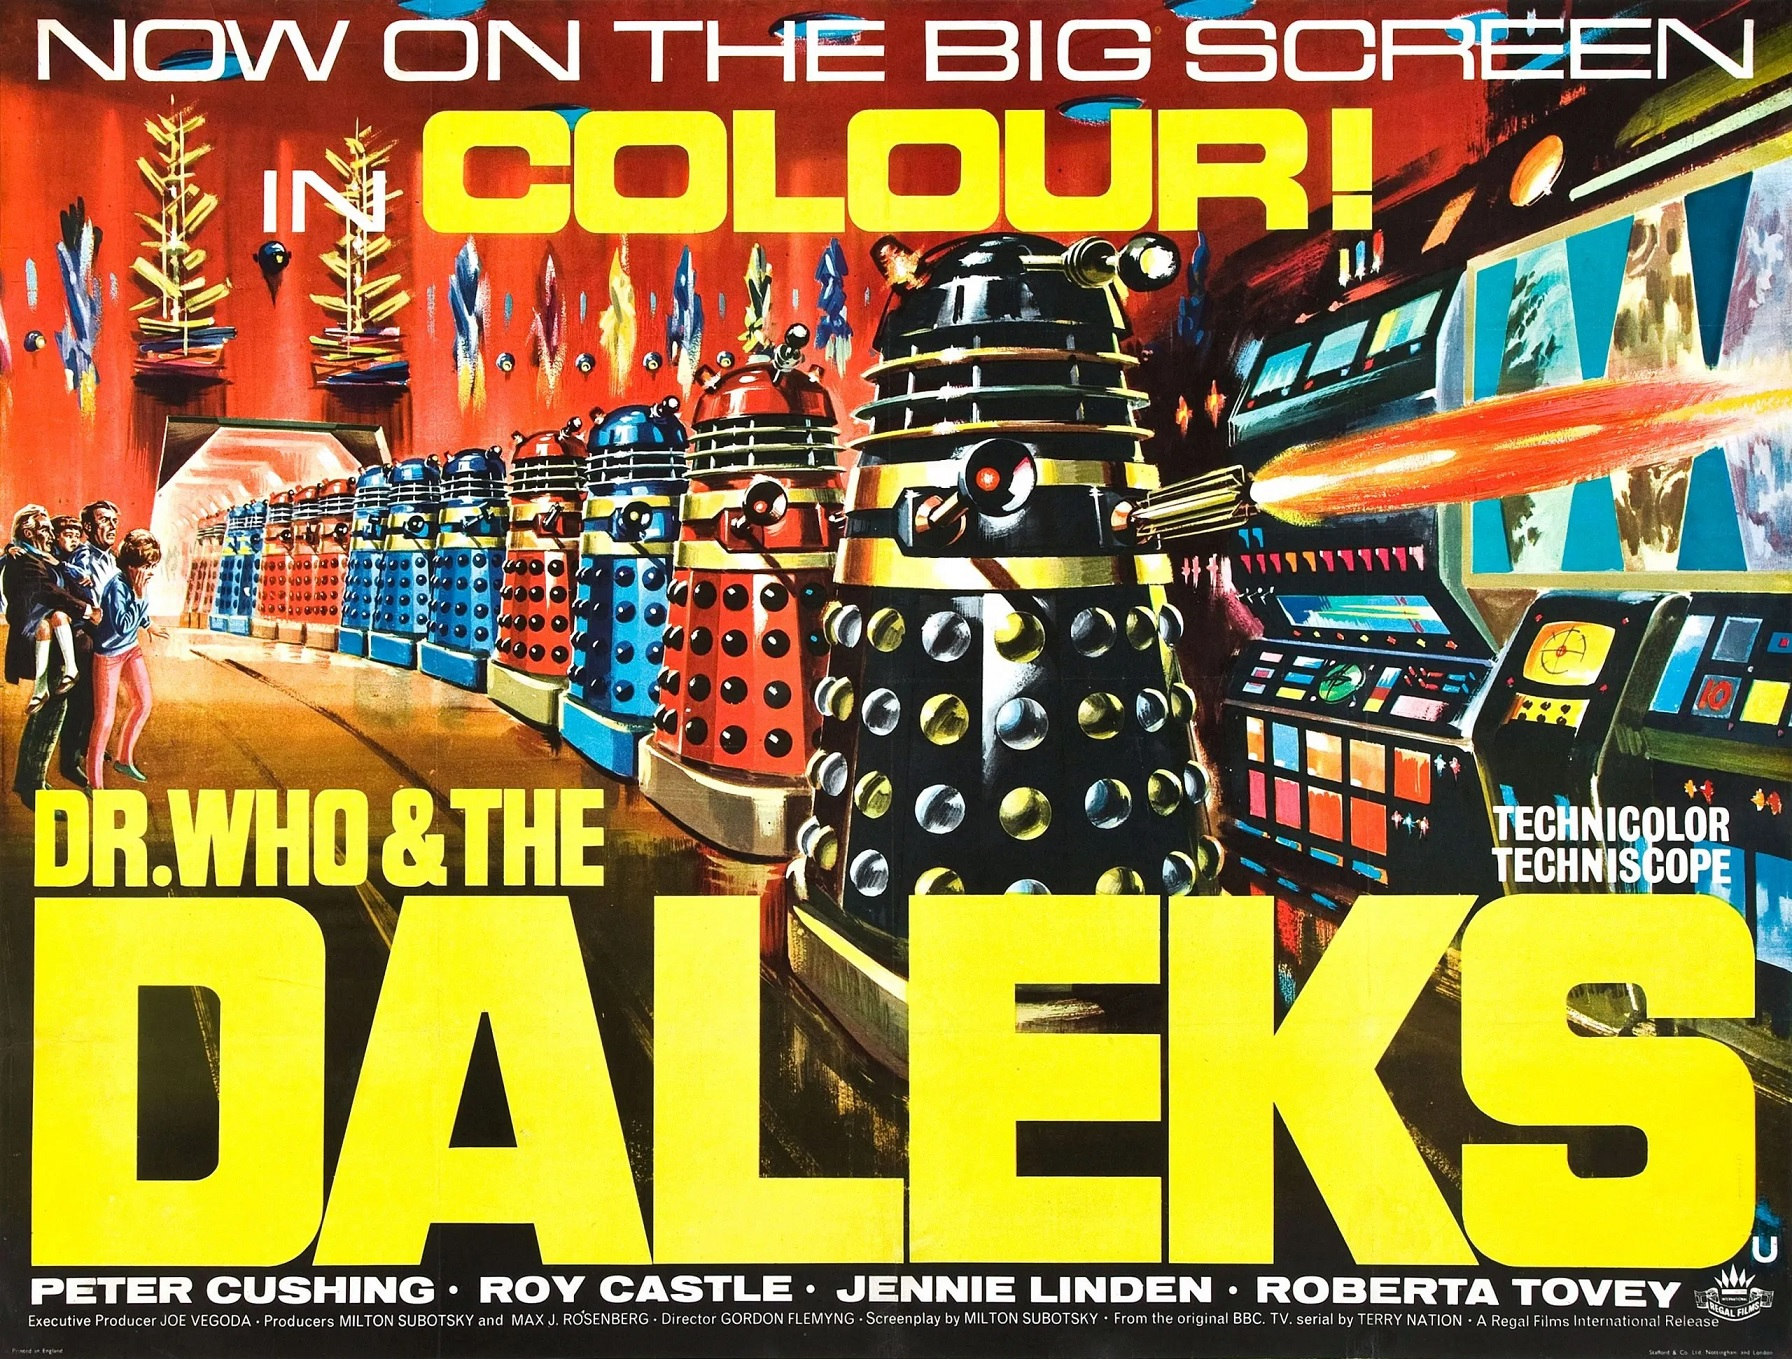 Dr Who and the Daleks to Air on Talking Pictures TV Next Month